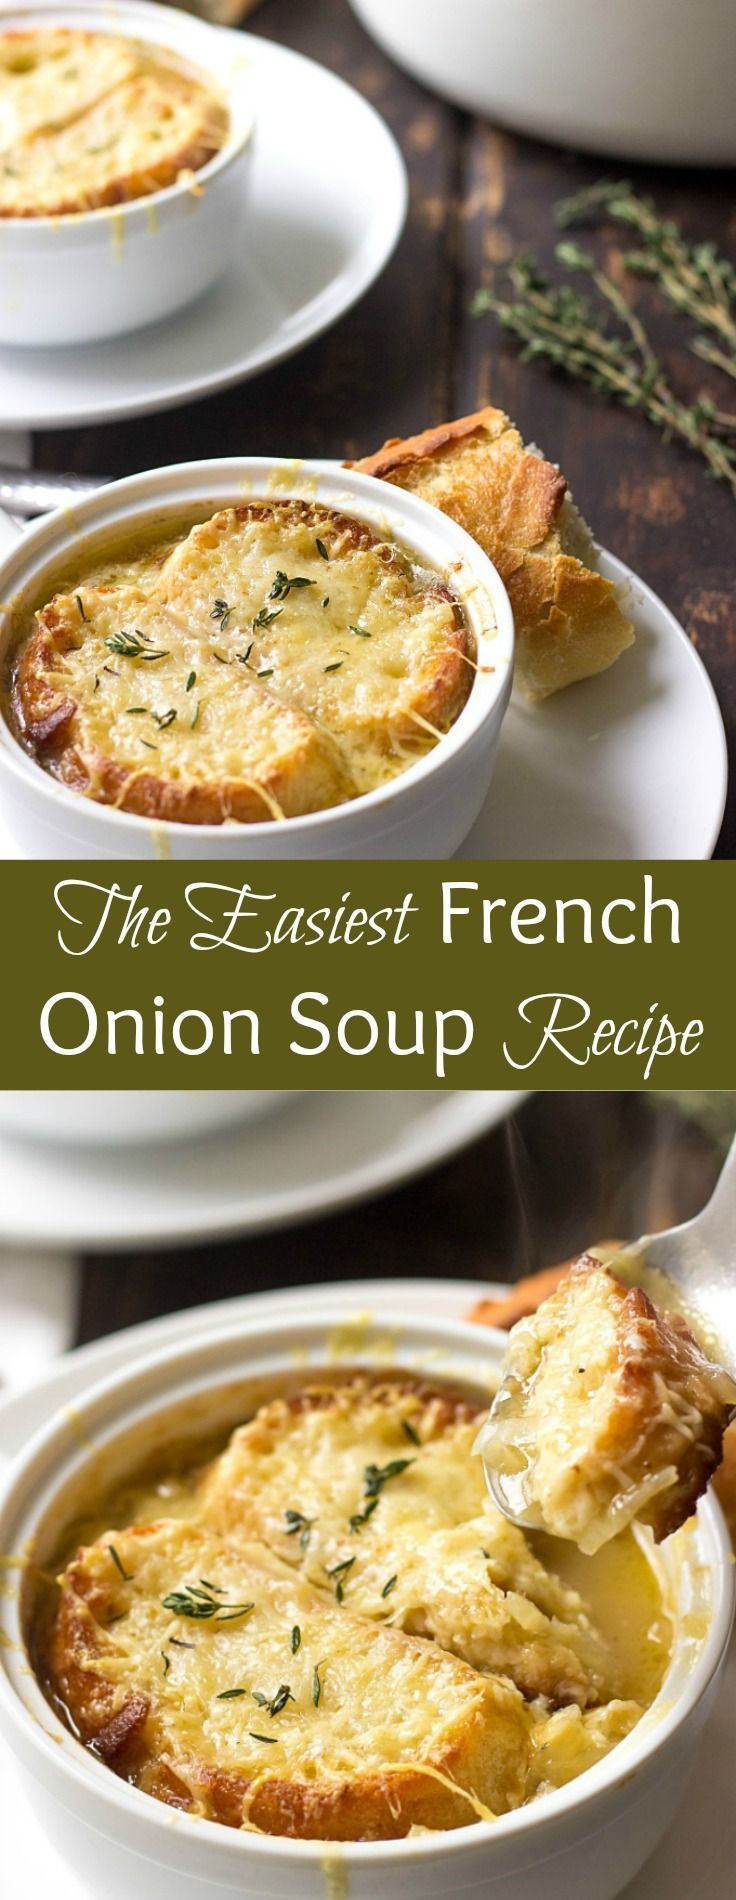 How To Make French Onion Soup | Easy French Onion Soup Recipe | Easy French Onion Soup | Best French Onion Soup